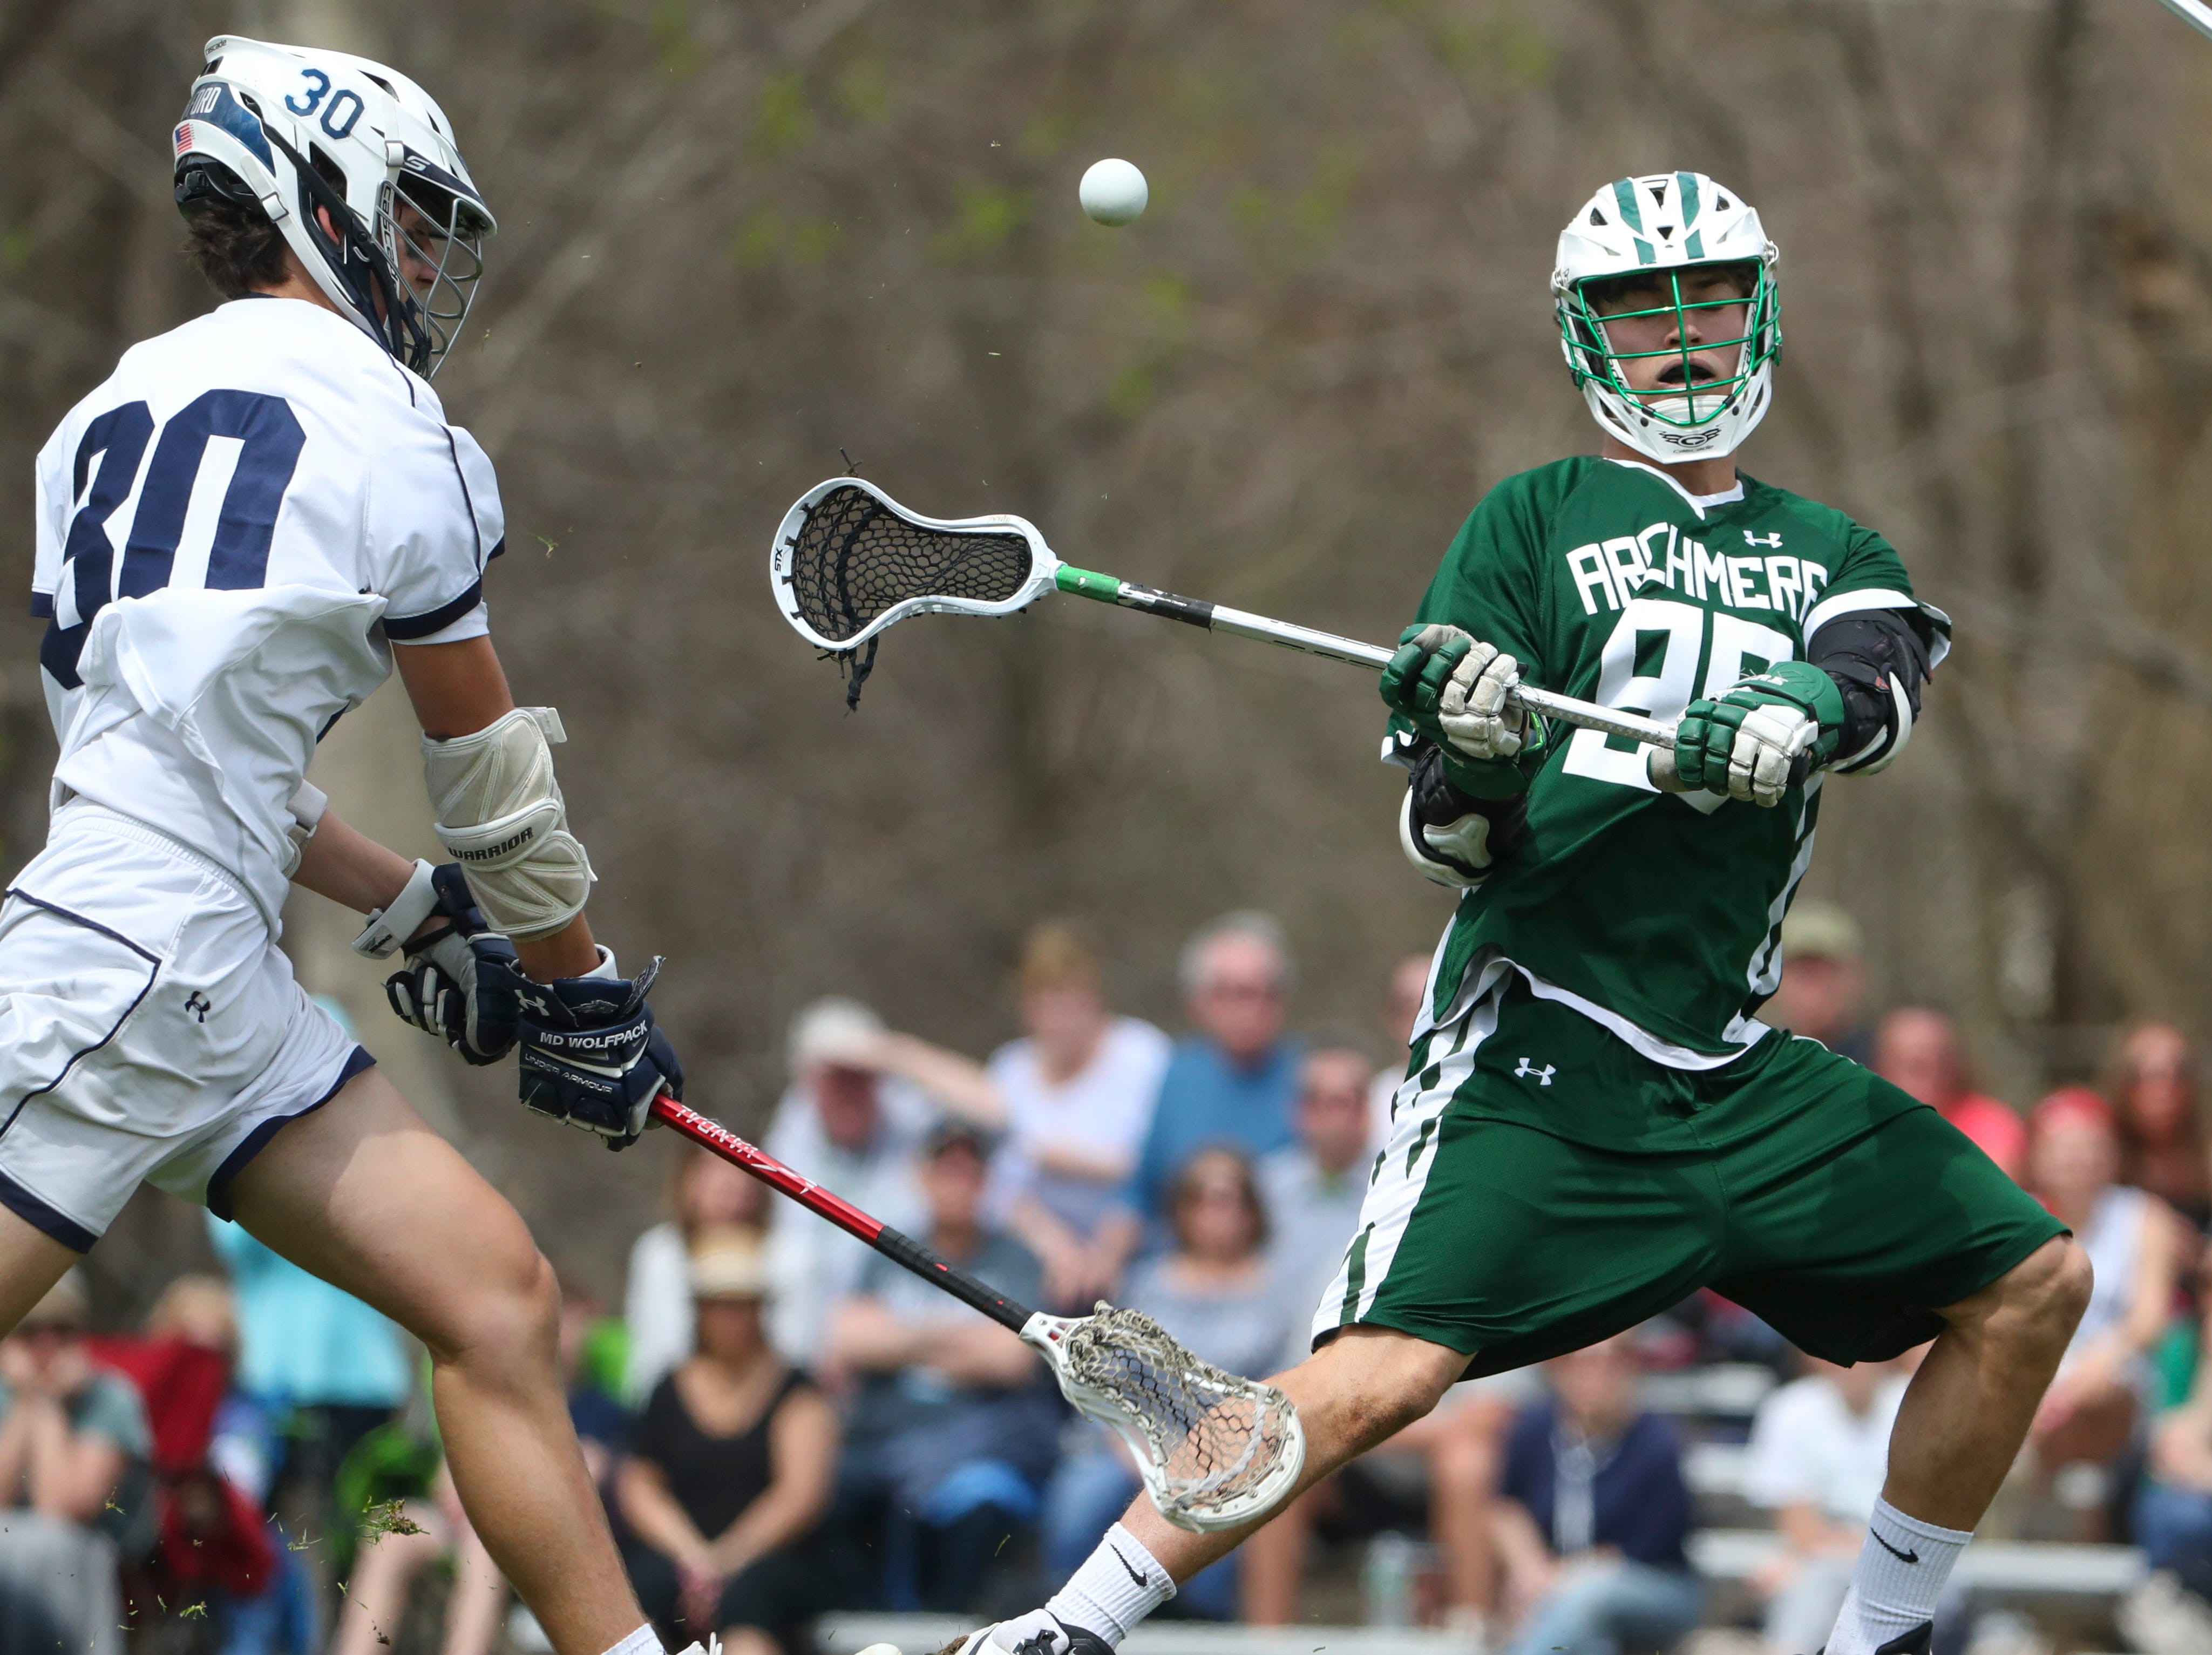 Archmere's Zane Fracek (right) passes as Sanford's Ian Binnersley defends in the second half of Sanford's 12-10 win Saturday.